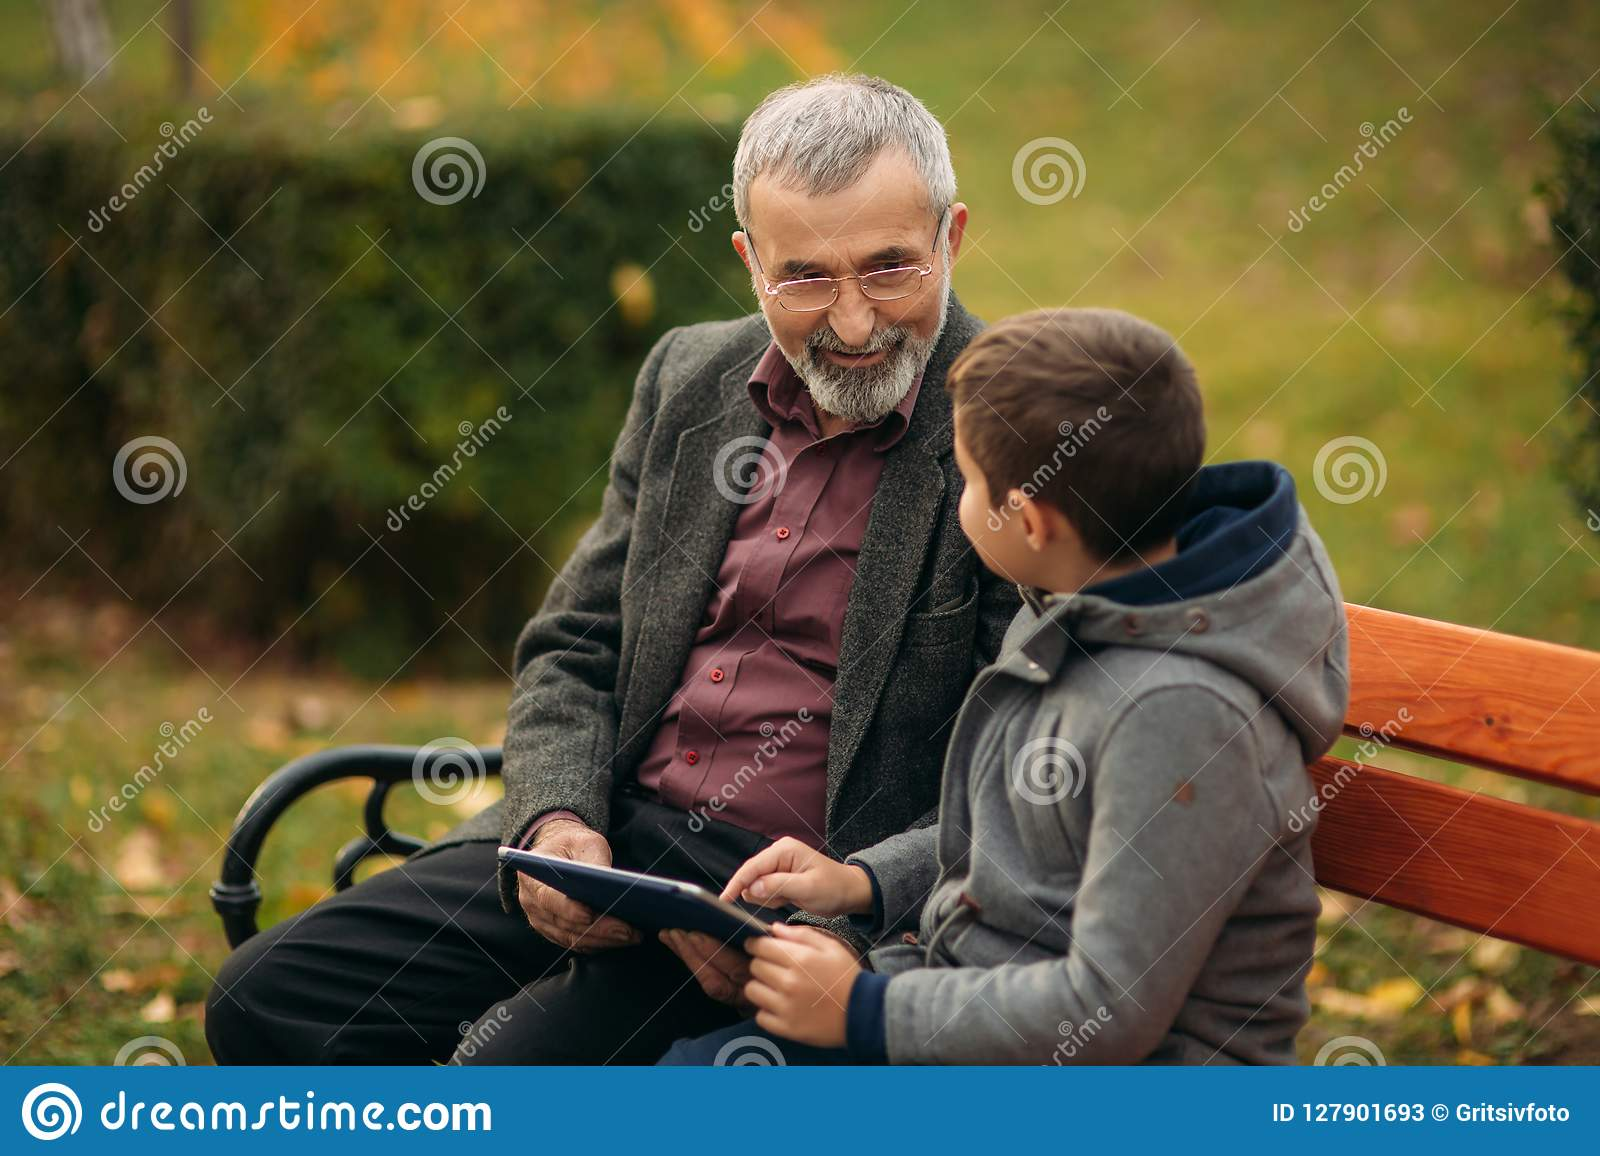 Grandson explains his grandfather how to use tablet. Child help older generation